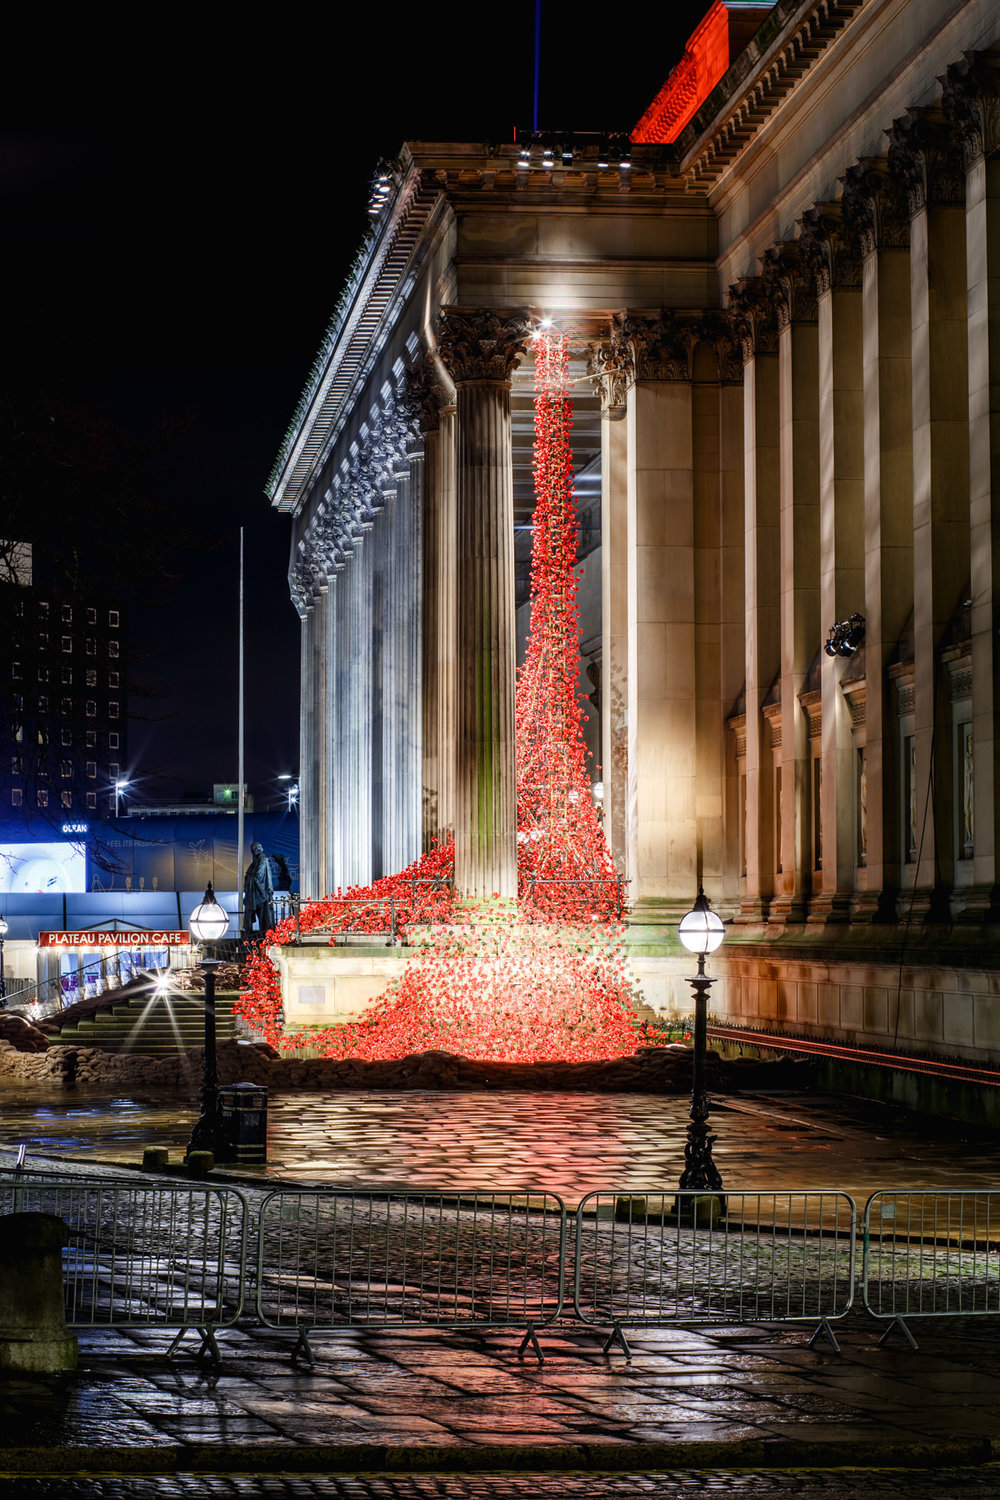 Weeping Window Paul Cummins Tom Piper Liverpool St.George's Hall Andrew Wilson Photography (32).jpg